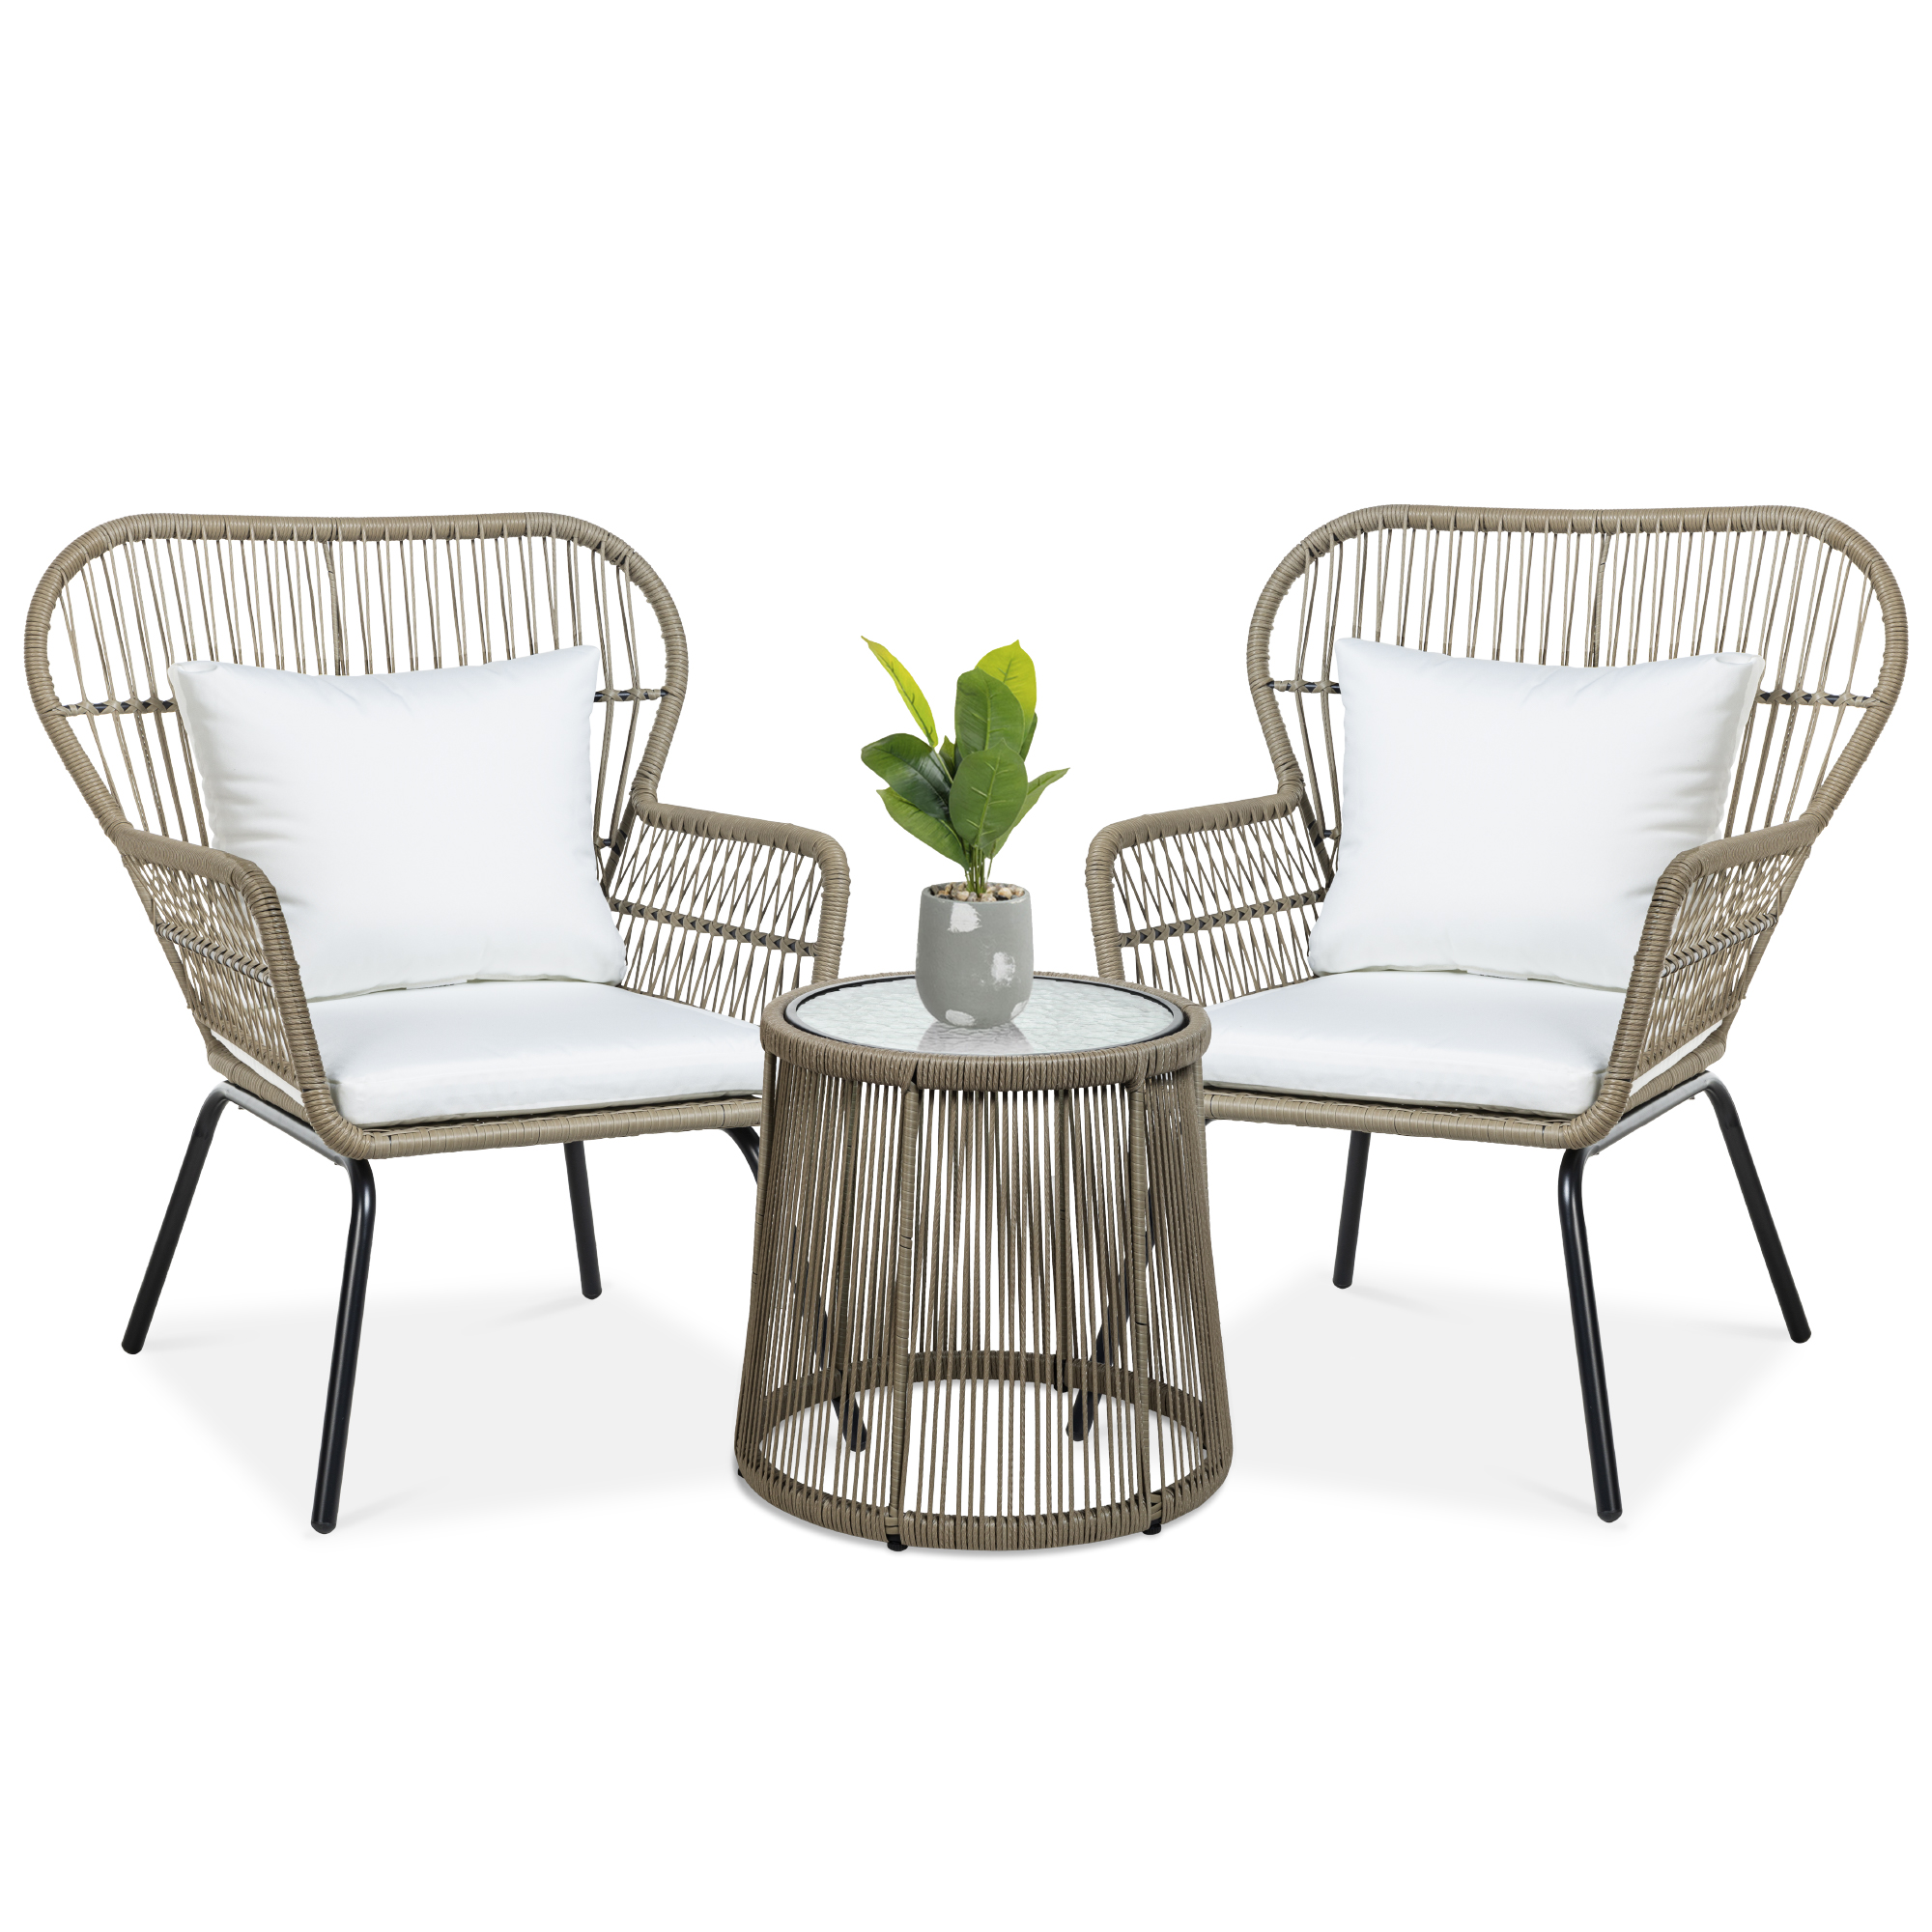 best choice products 3 piece patio wicker conversation bistro set w 2 chairs glass top side table cushions tan